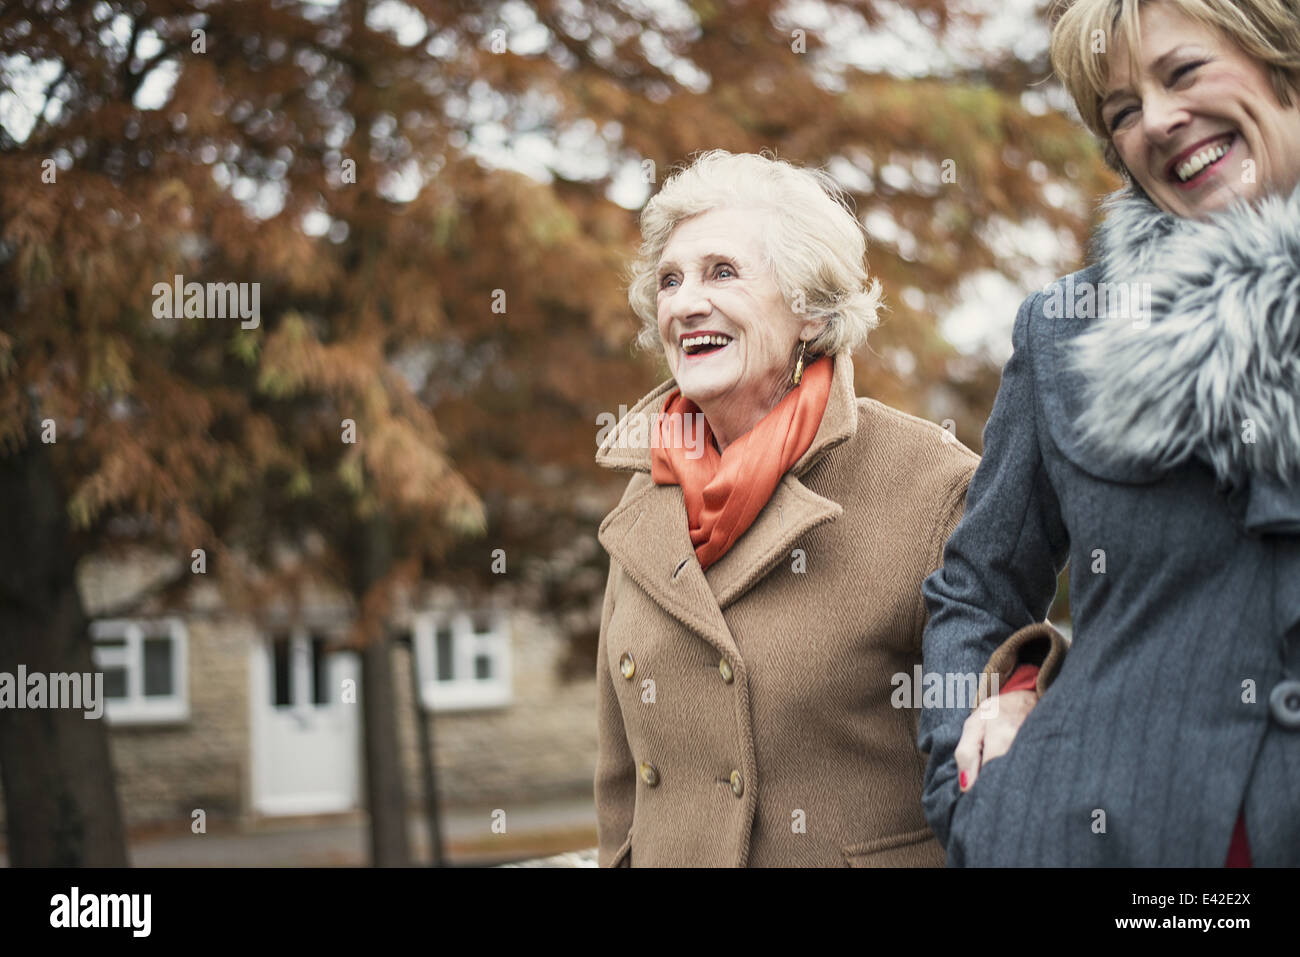 Senior woman and daughter walking outdoors - Stock Image